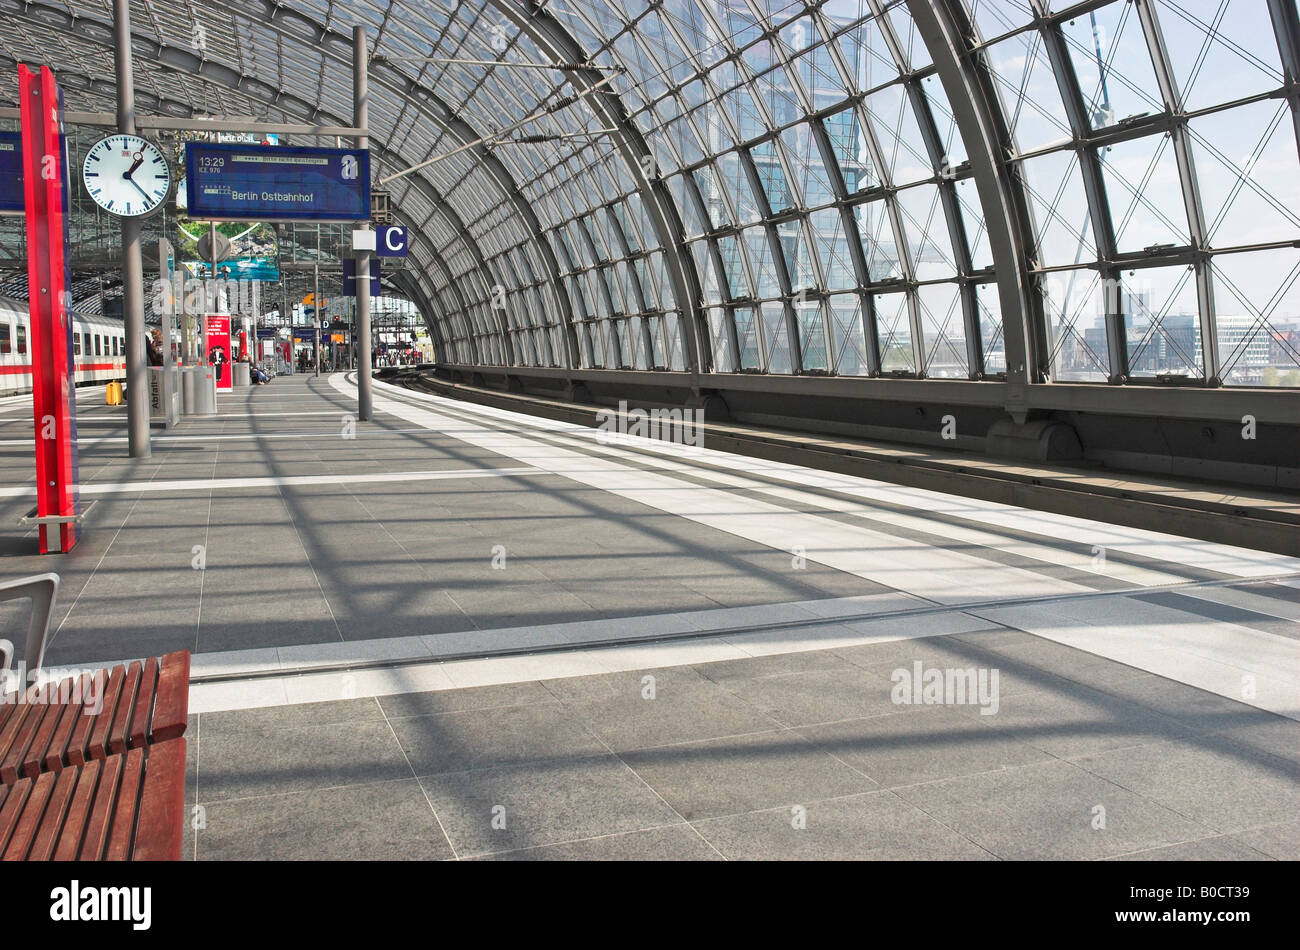 Railroad station platform Central Station Berlin Hauptbahnhof Berlin Germany April 2008 - Stock Image